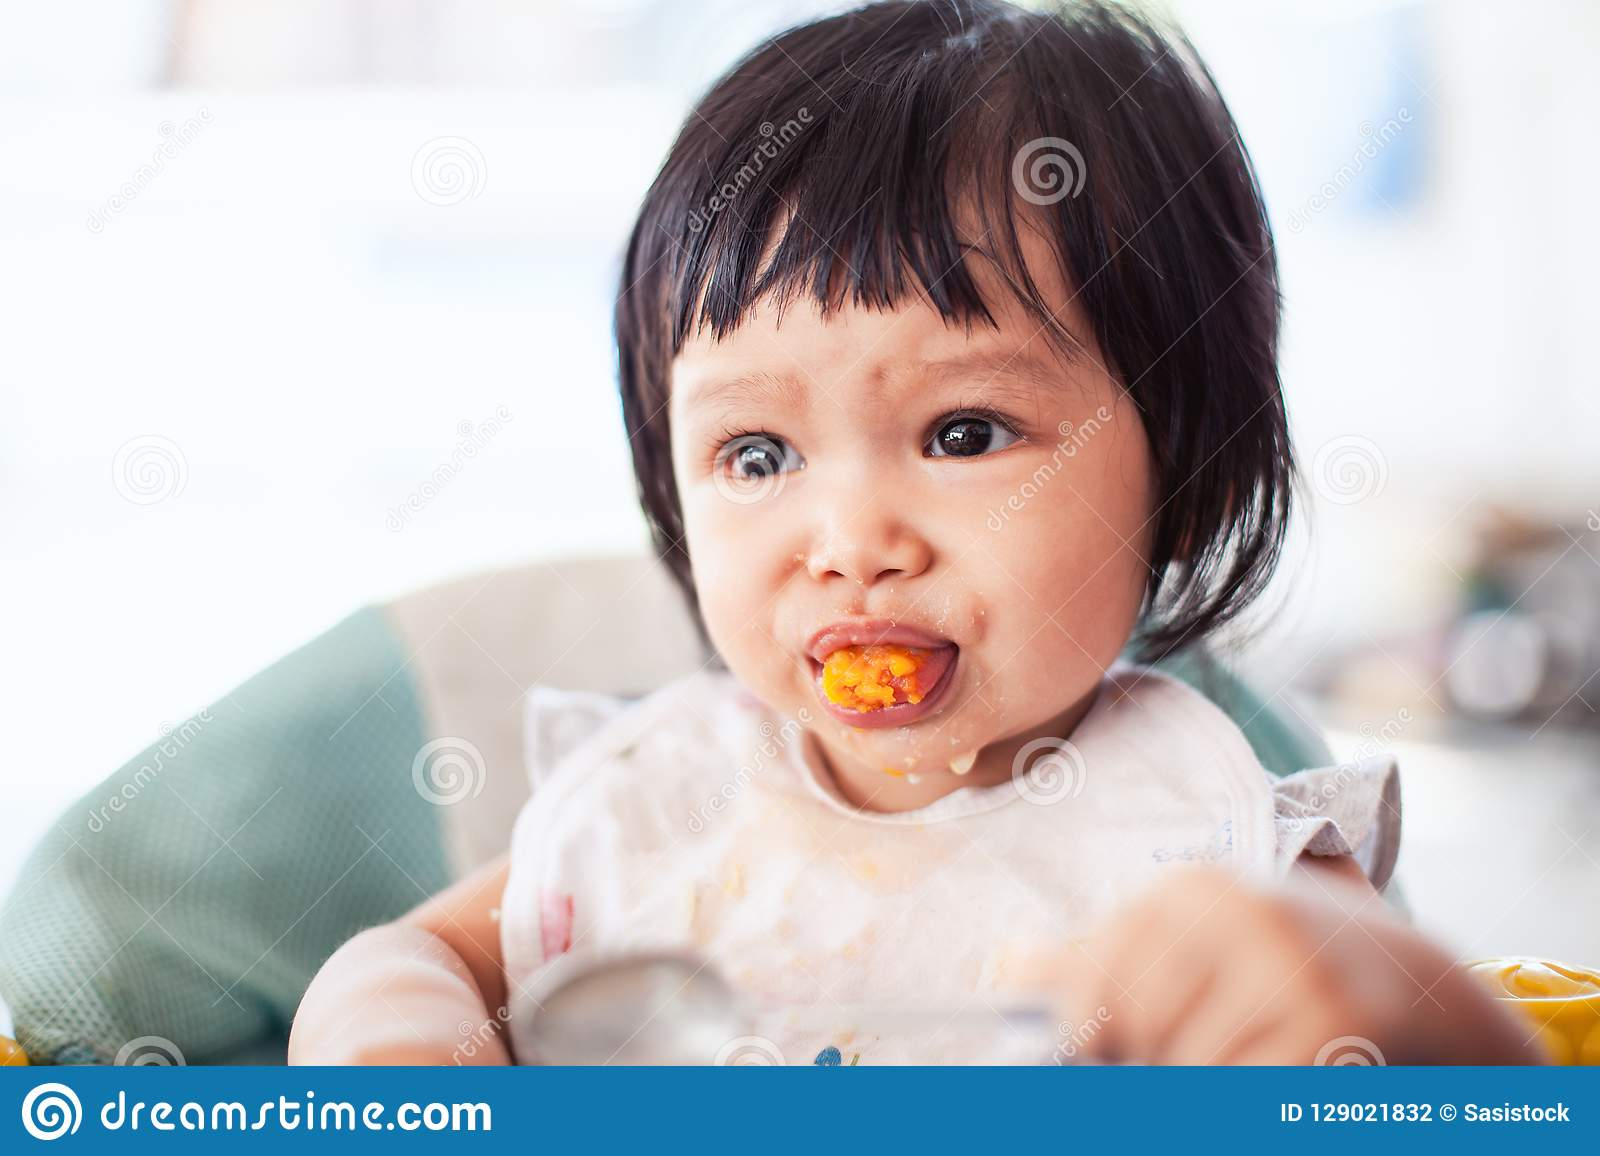 Cute baby asian child girl eating healthy food by herself